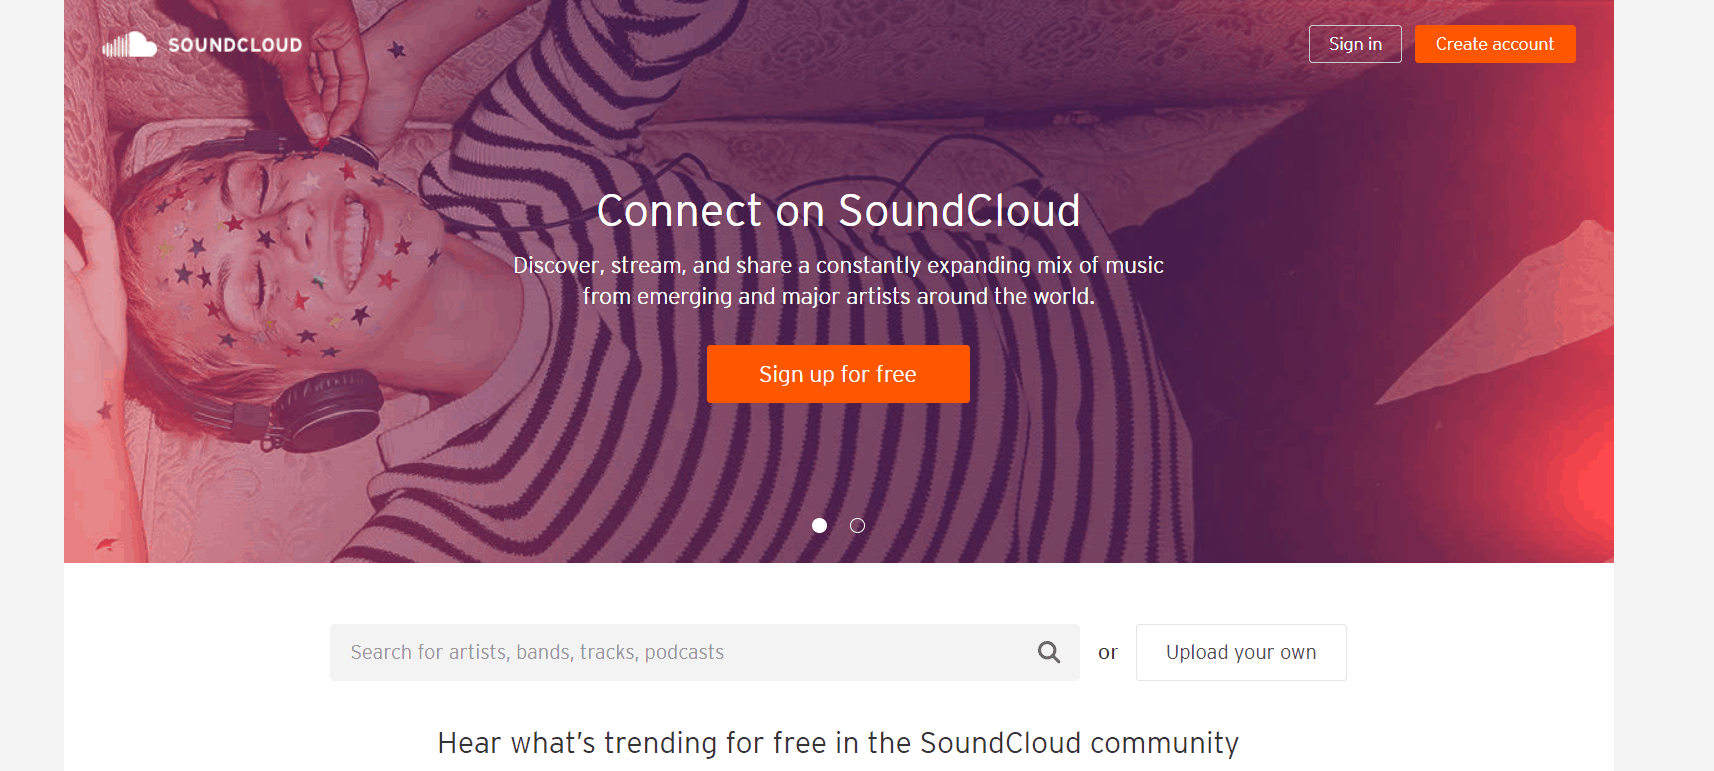 Soundcloud uses Ruby on Rails